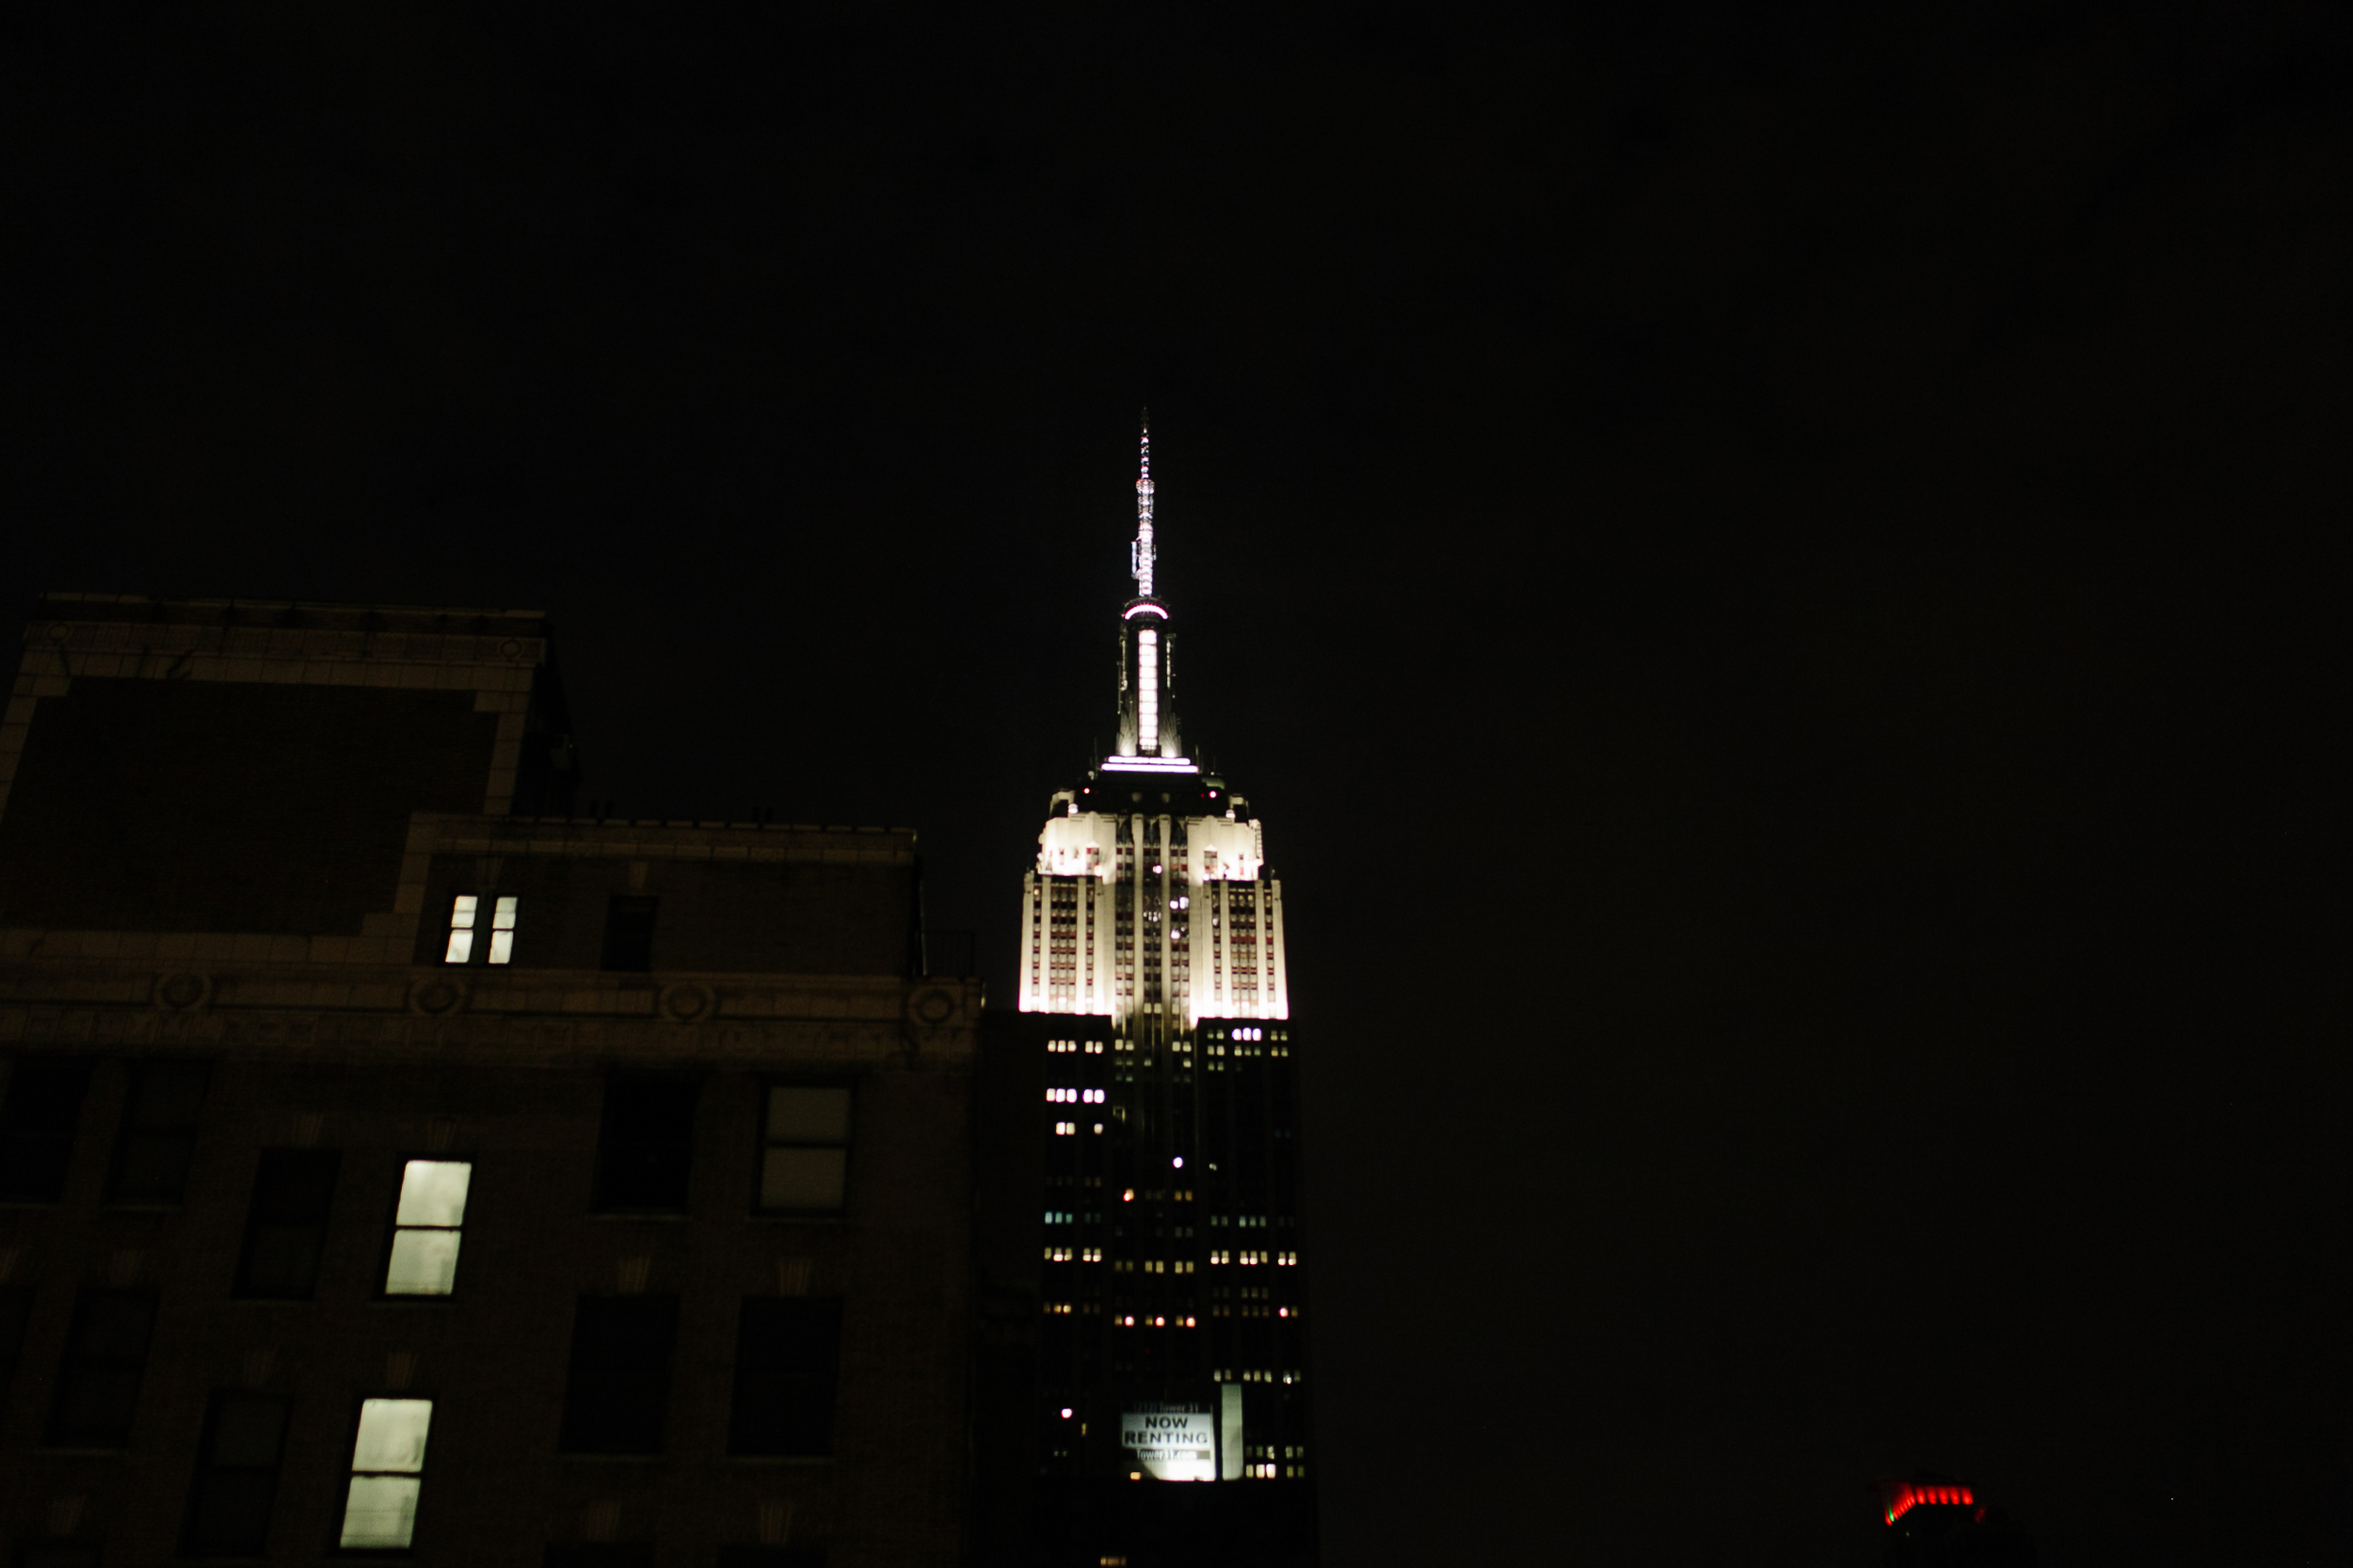 EMPIRE STATE BUILDING VIEW ON THE CLEAR NIGHT